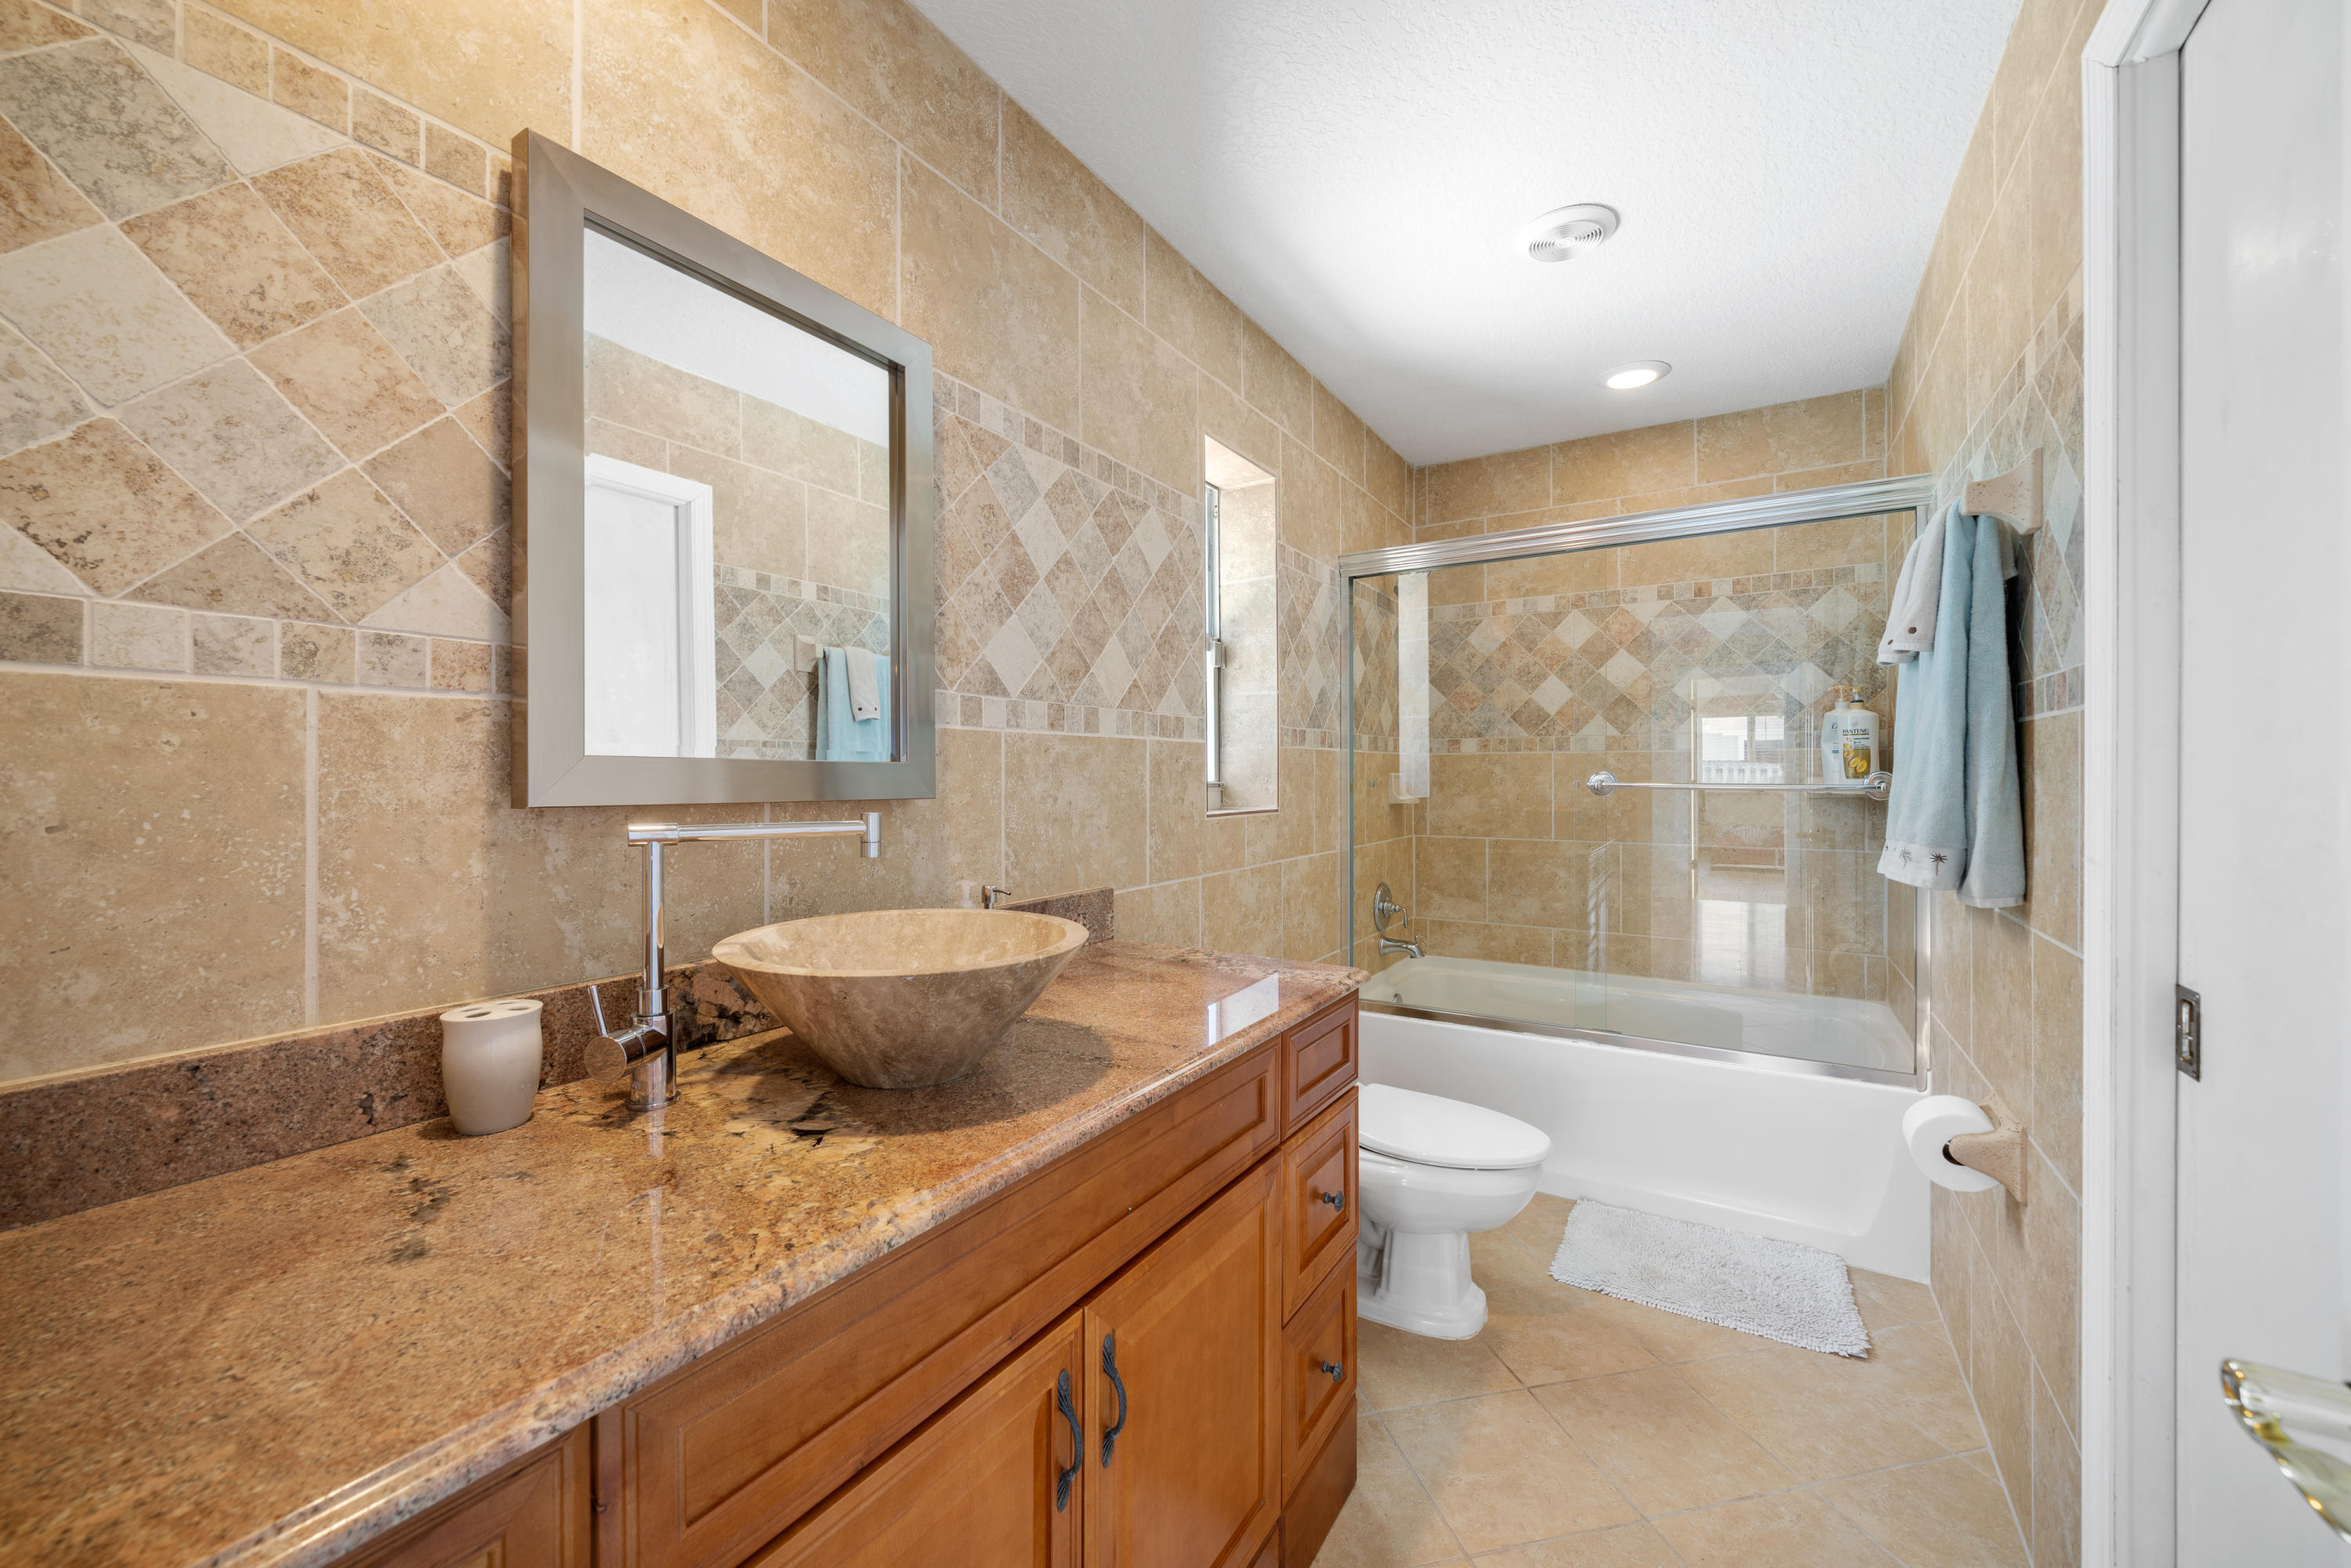 COLLEGE PARK HOMES FOR SALE